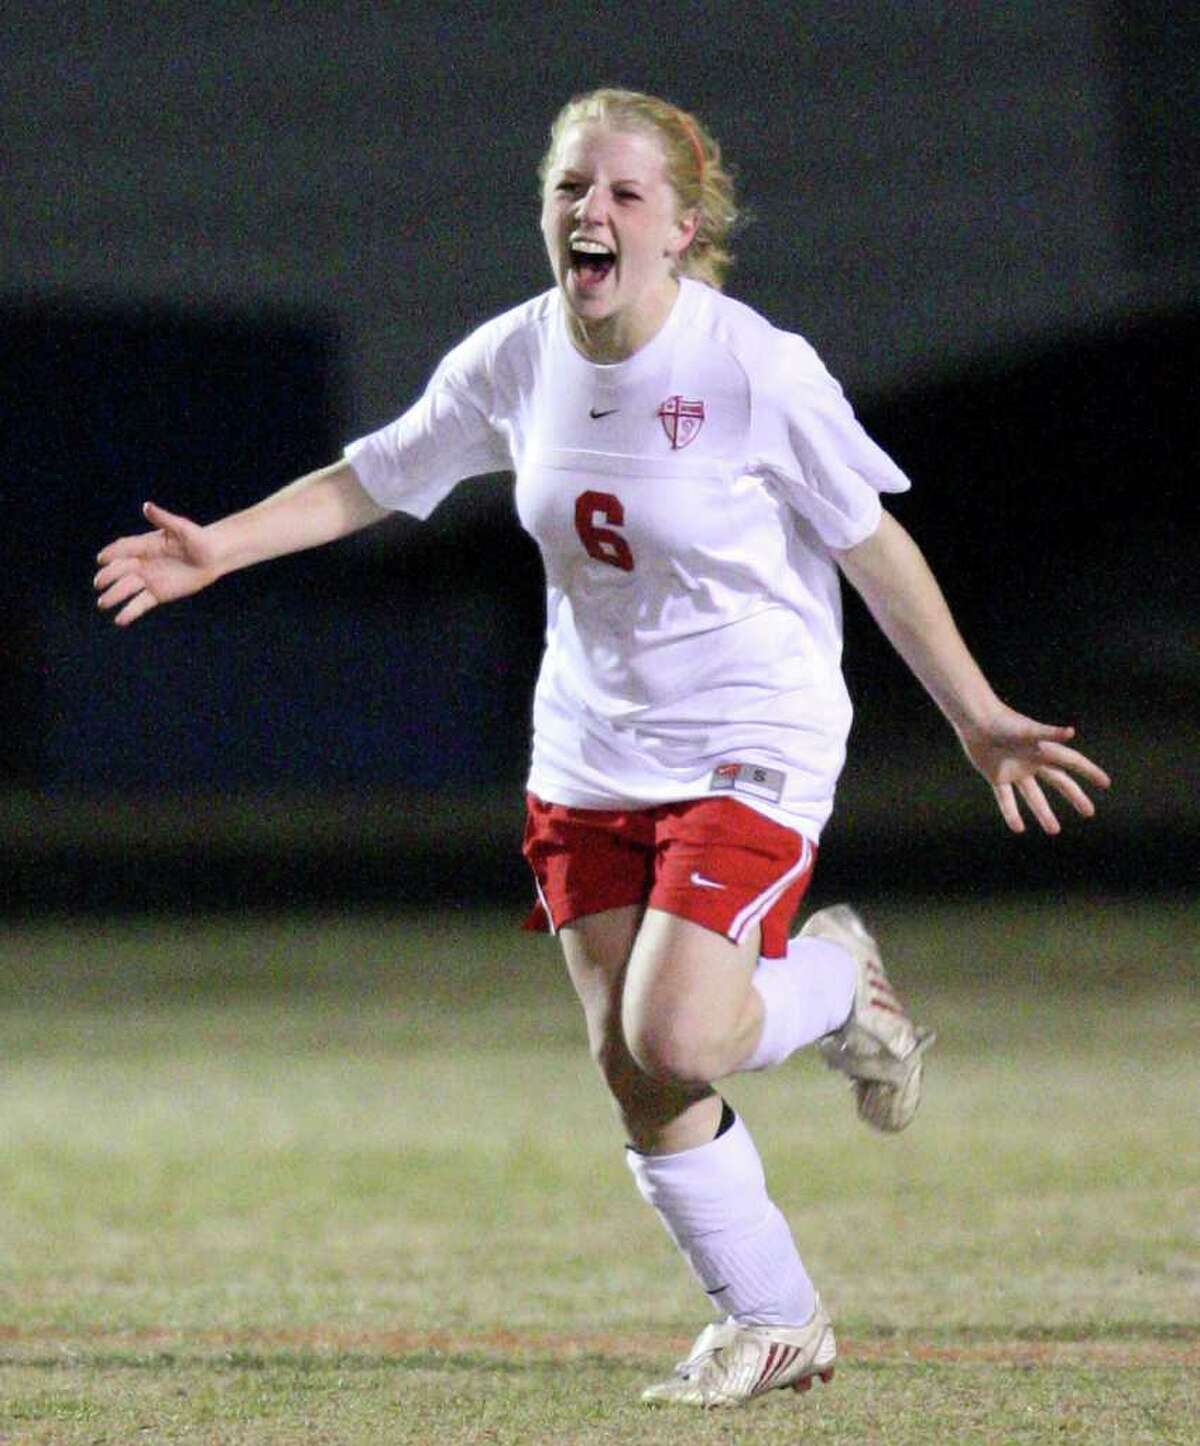 FOR SPORTS - Antonian's Emily Leonard reacts after scoring a goal against Argyle Liberty Christian Friday Feb. 11, 2011 at Antonian high school. Antonian won 2-1 in overtime. (PHOTO BY EDWARD A. ORNELAS/eaornelas@express-news.net)